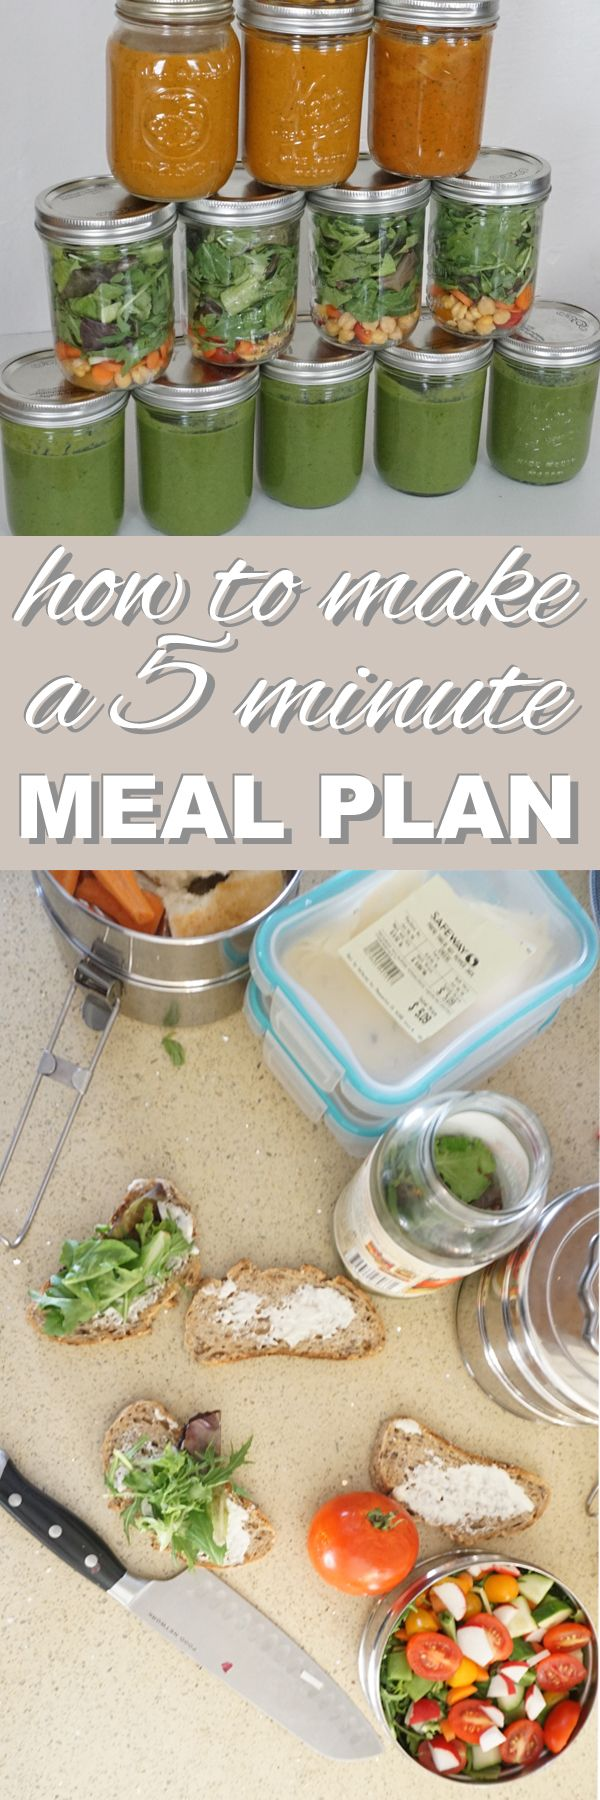 How To Make A 5 Minute Meal Plan